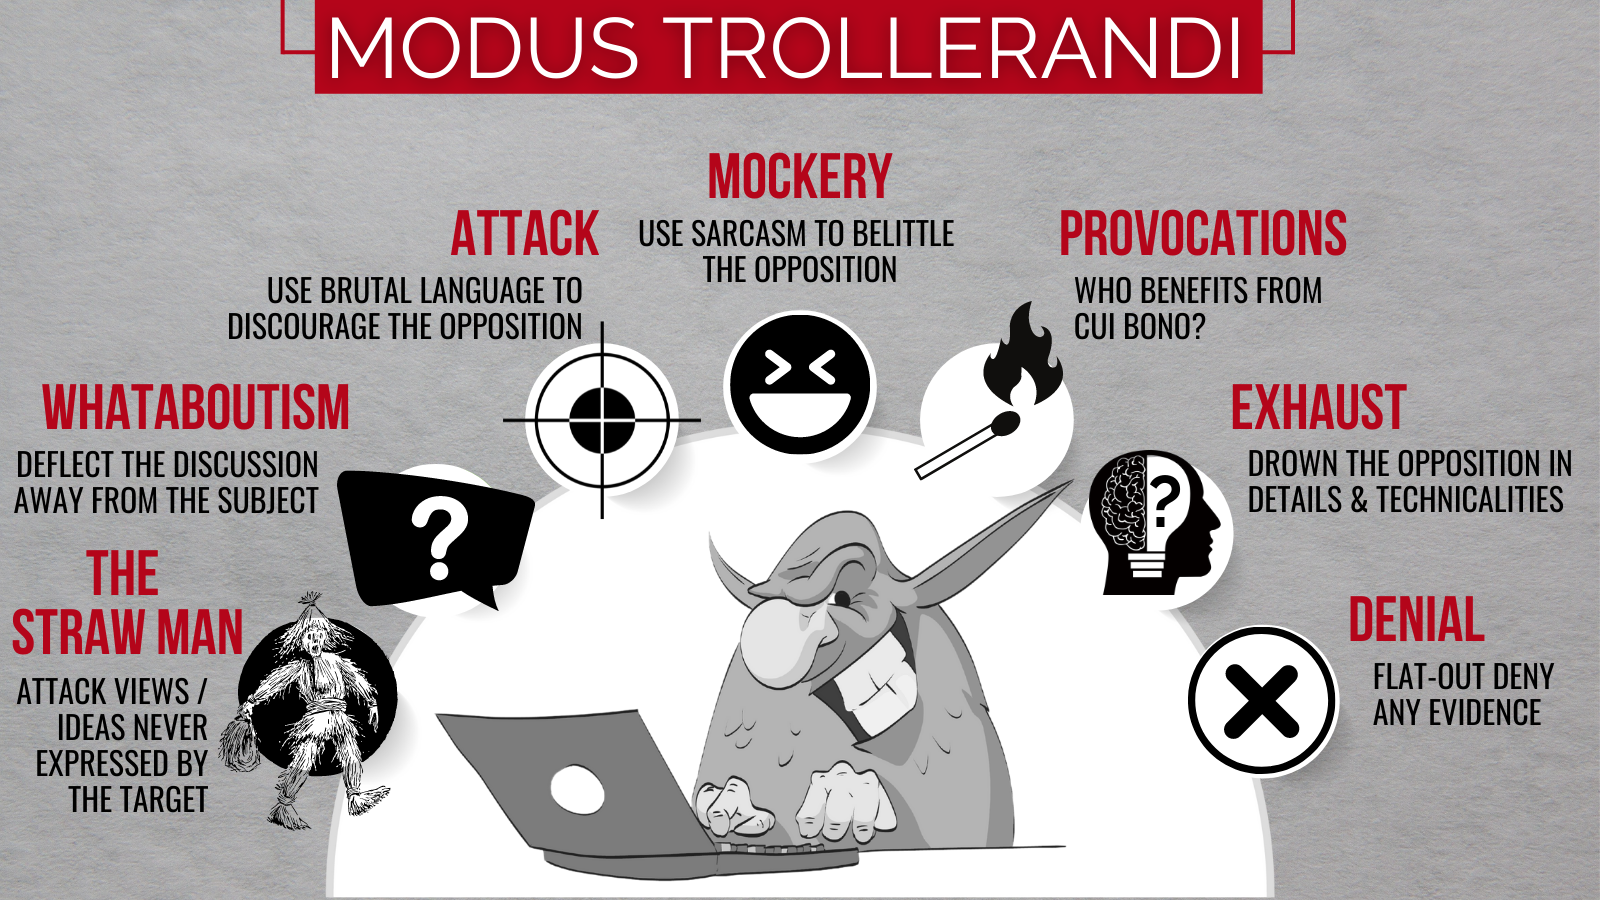 How to attack, deny and evade opponents by manipulation and disinformation